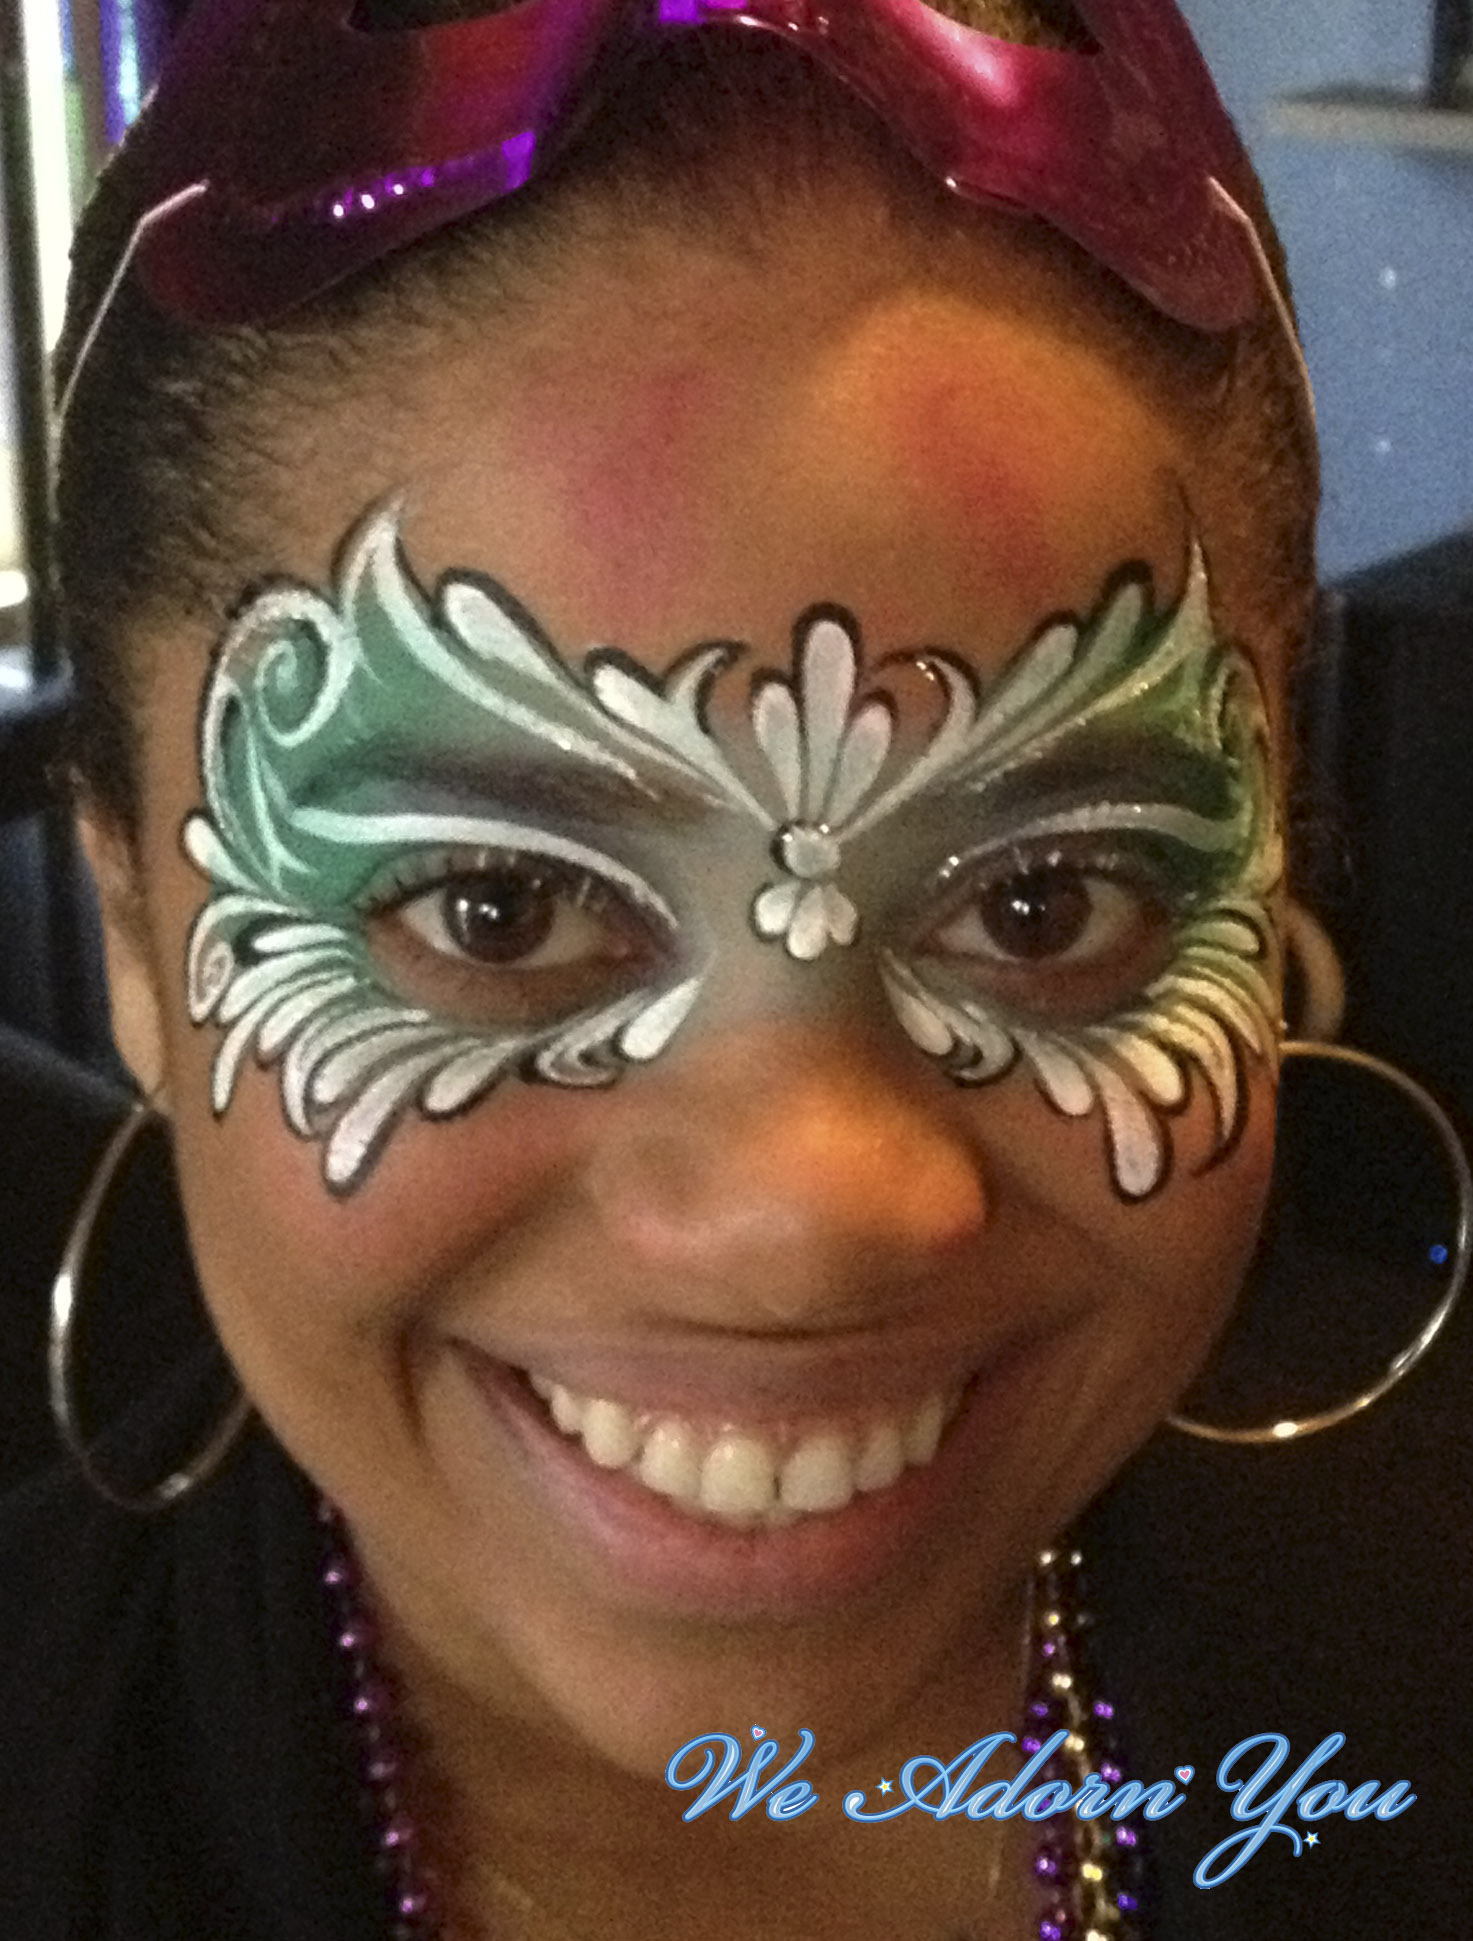 Face Painting Mardi Gras Mask- We Adorn You.jpg